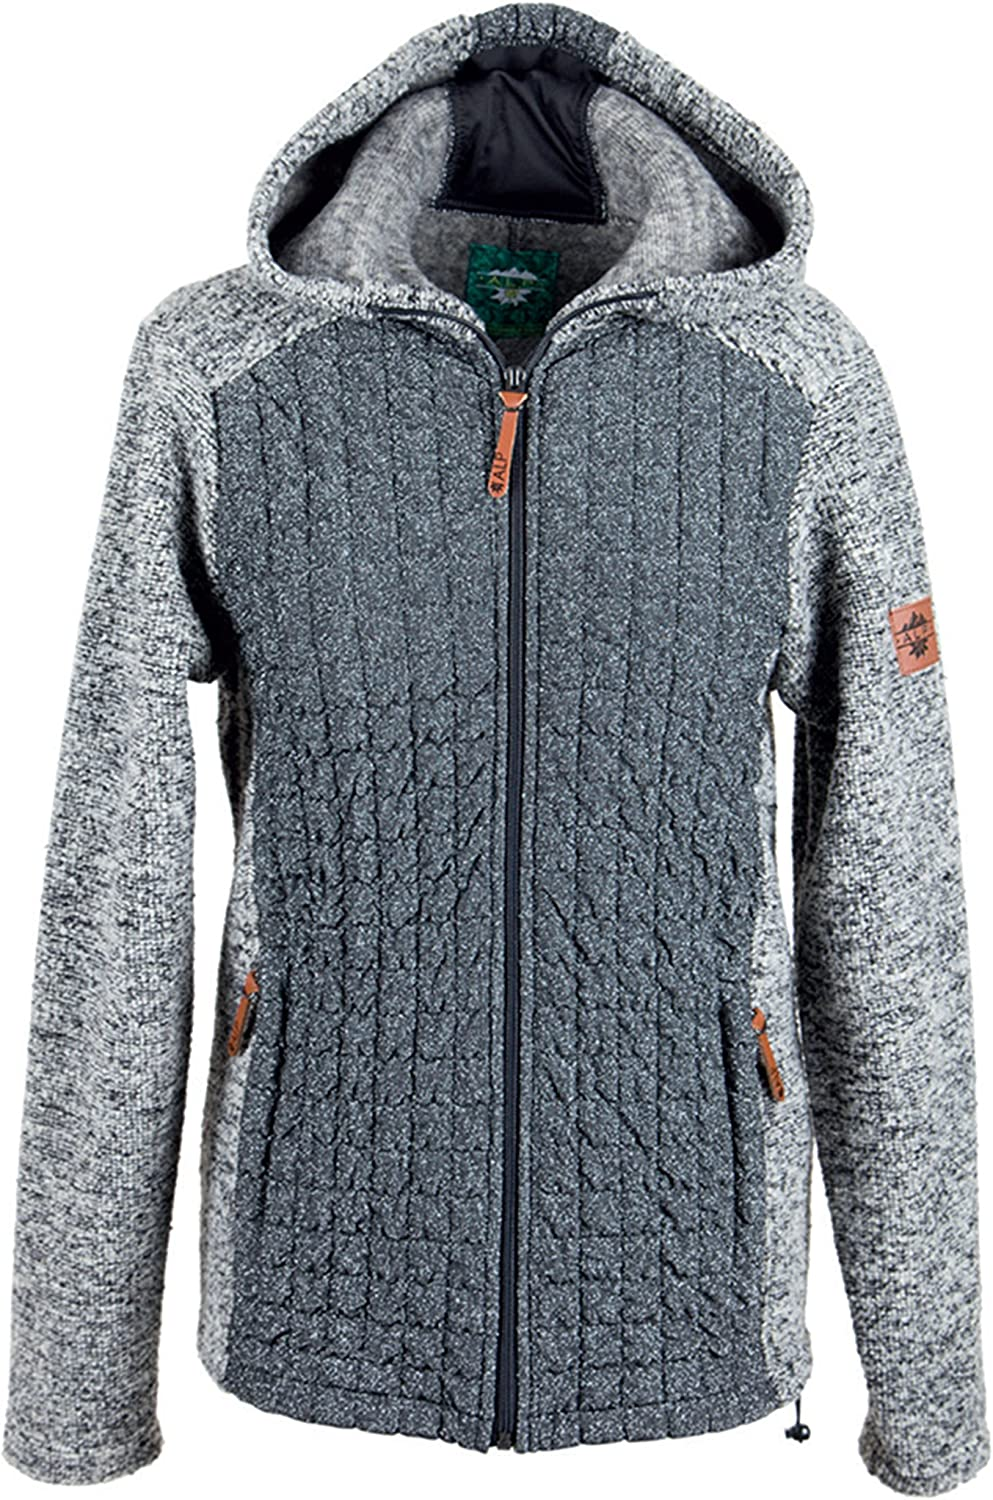 Alp by Brush Ladies WoolMix Jacket with Hood and LurexQuilt